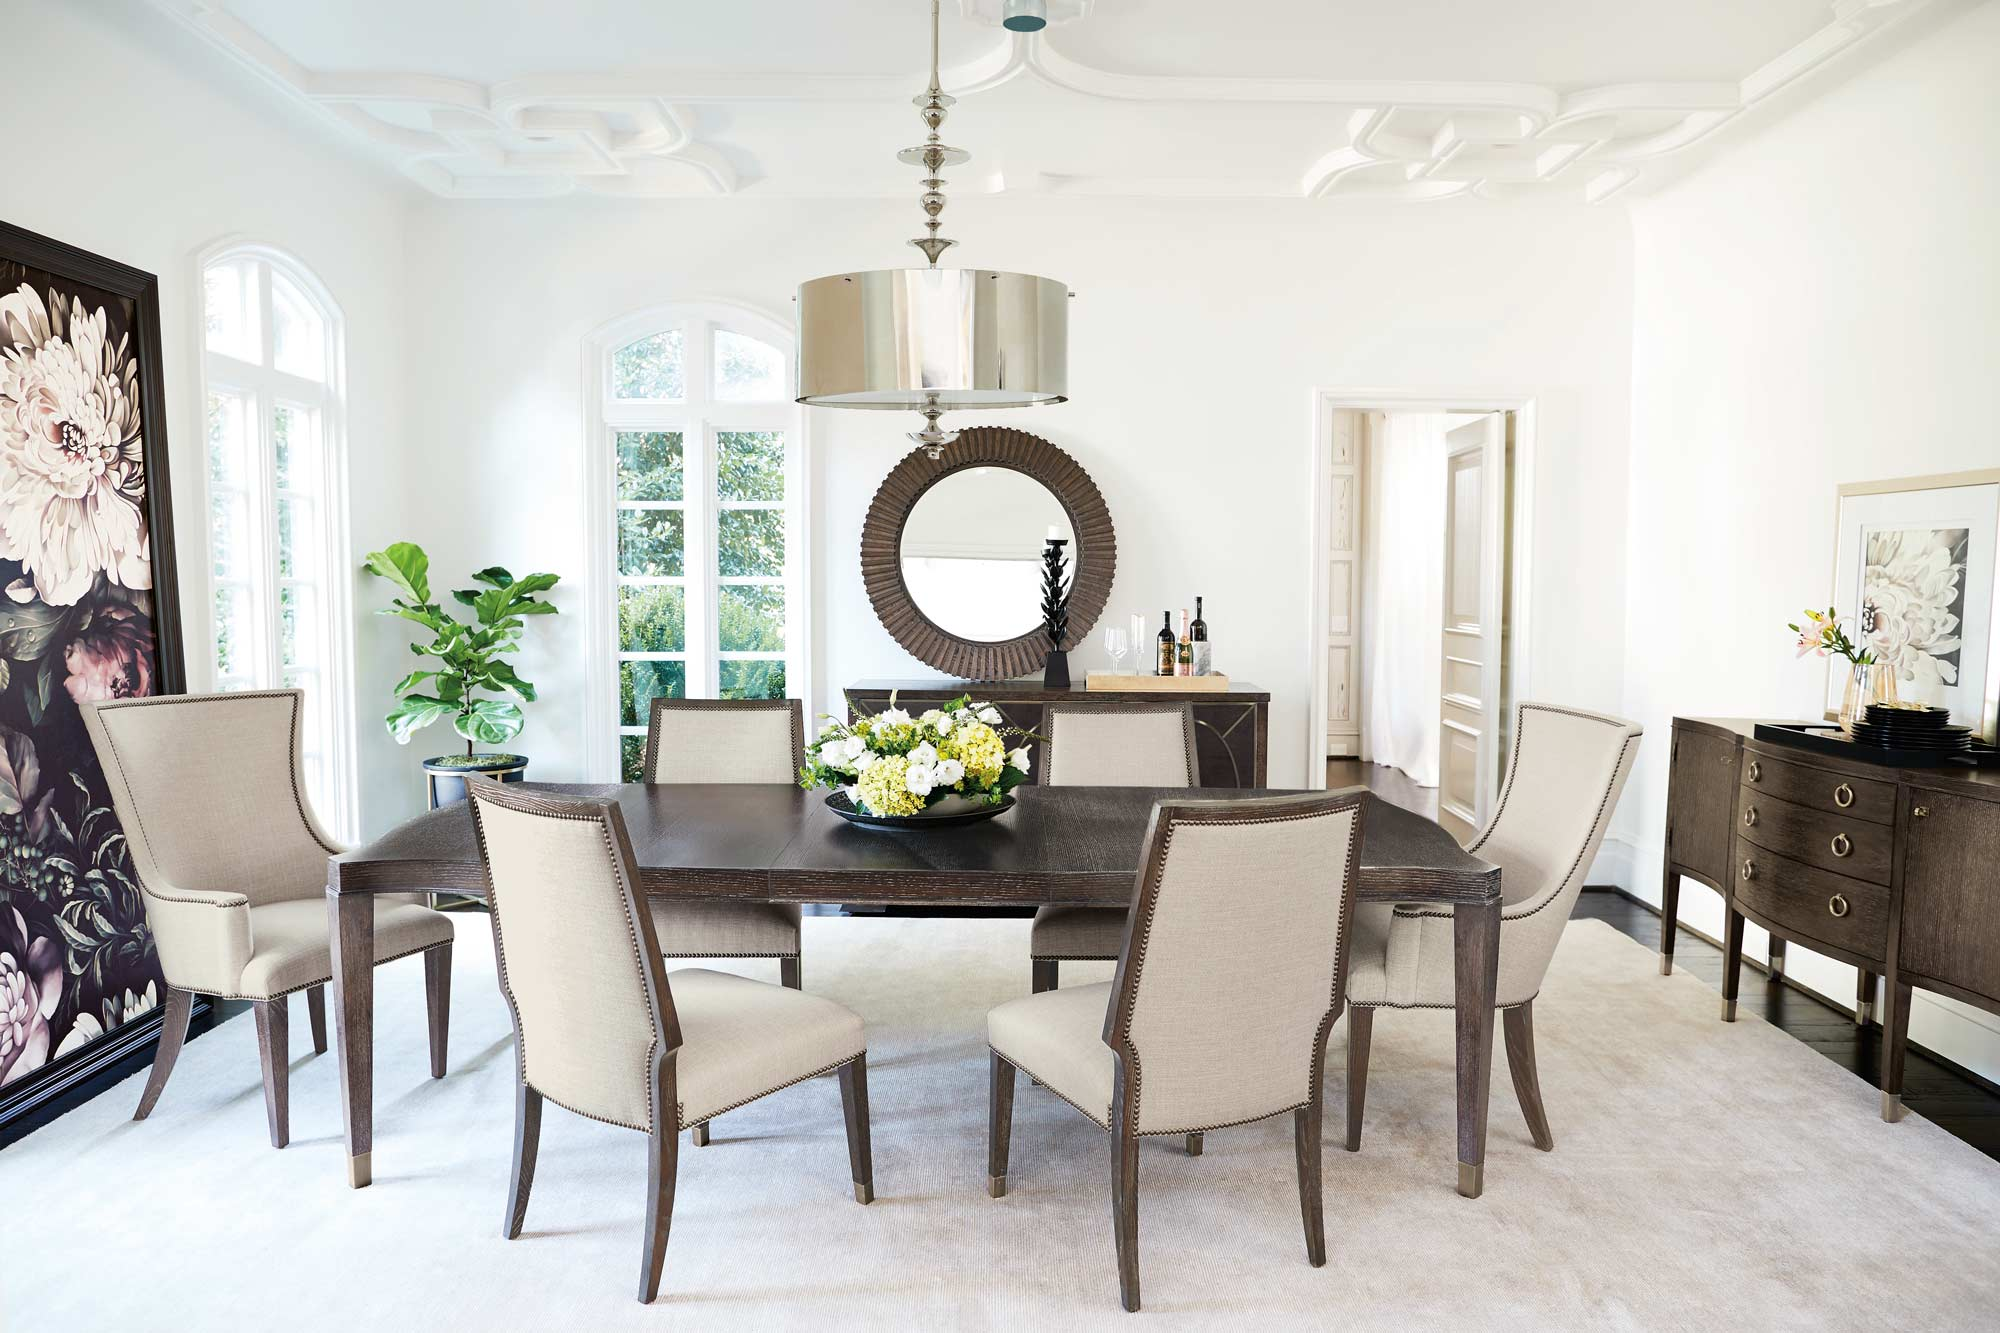 decorate dinning room dining decorating furniture contemporary design ideas modern